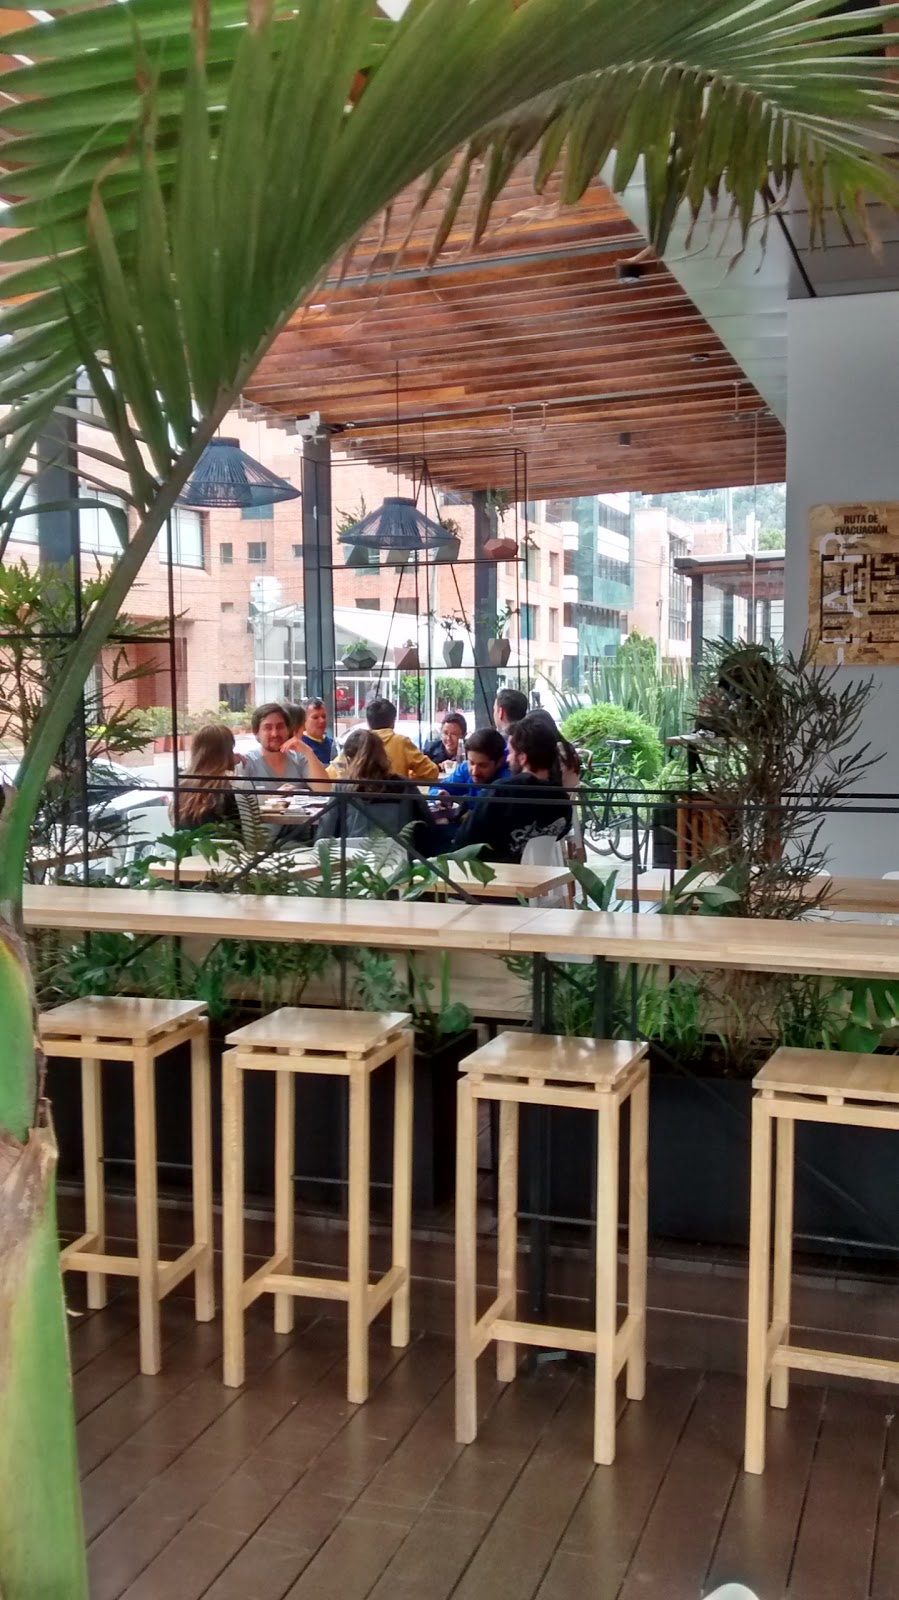 Azahar Café: A Work-Friendly Place in Bogota